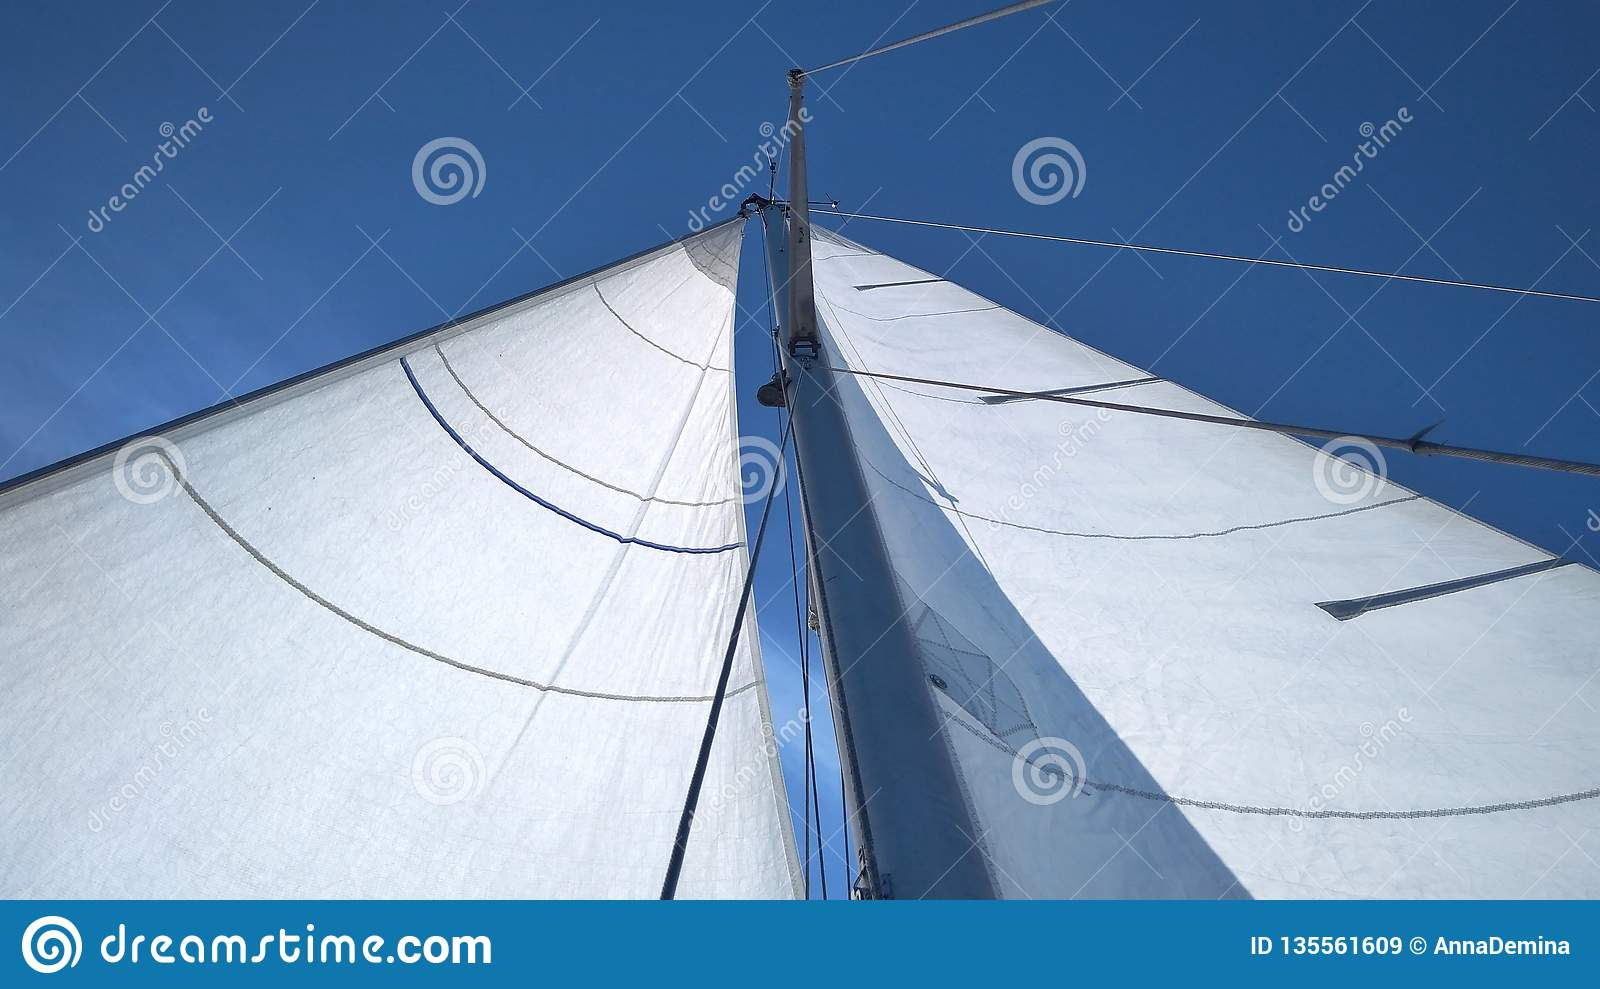 Snow-white sails against a clean bright blue sky on a sunny summer day